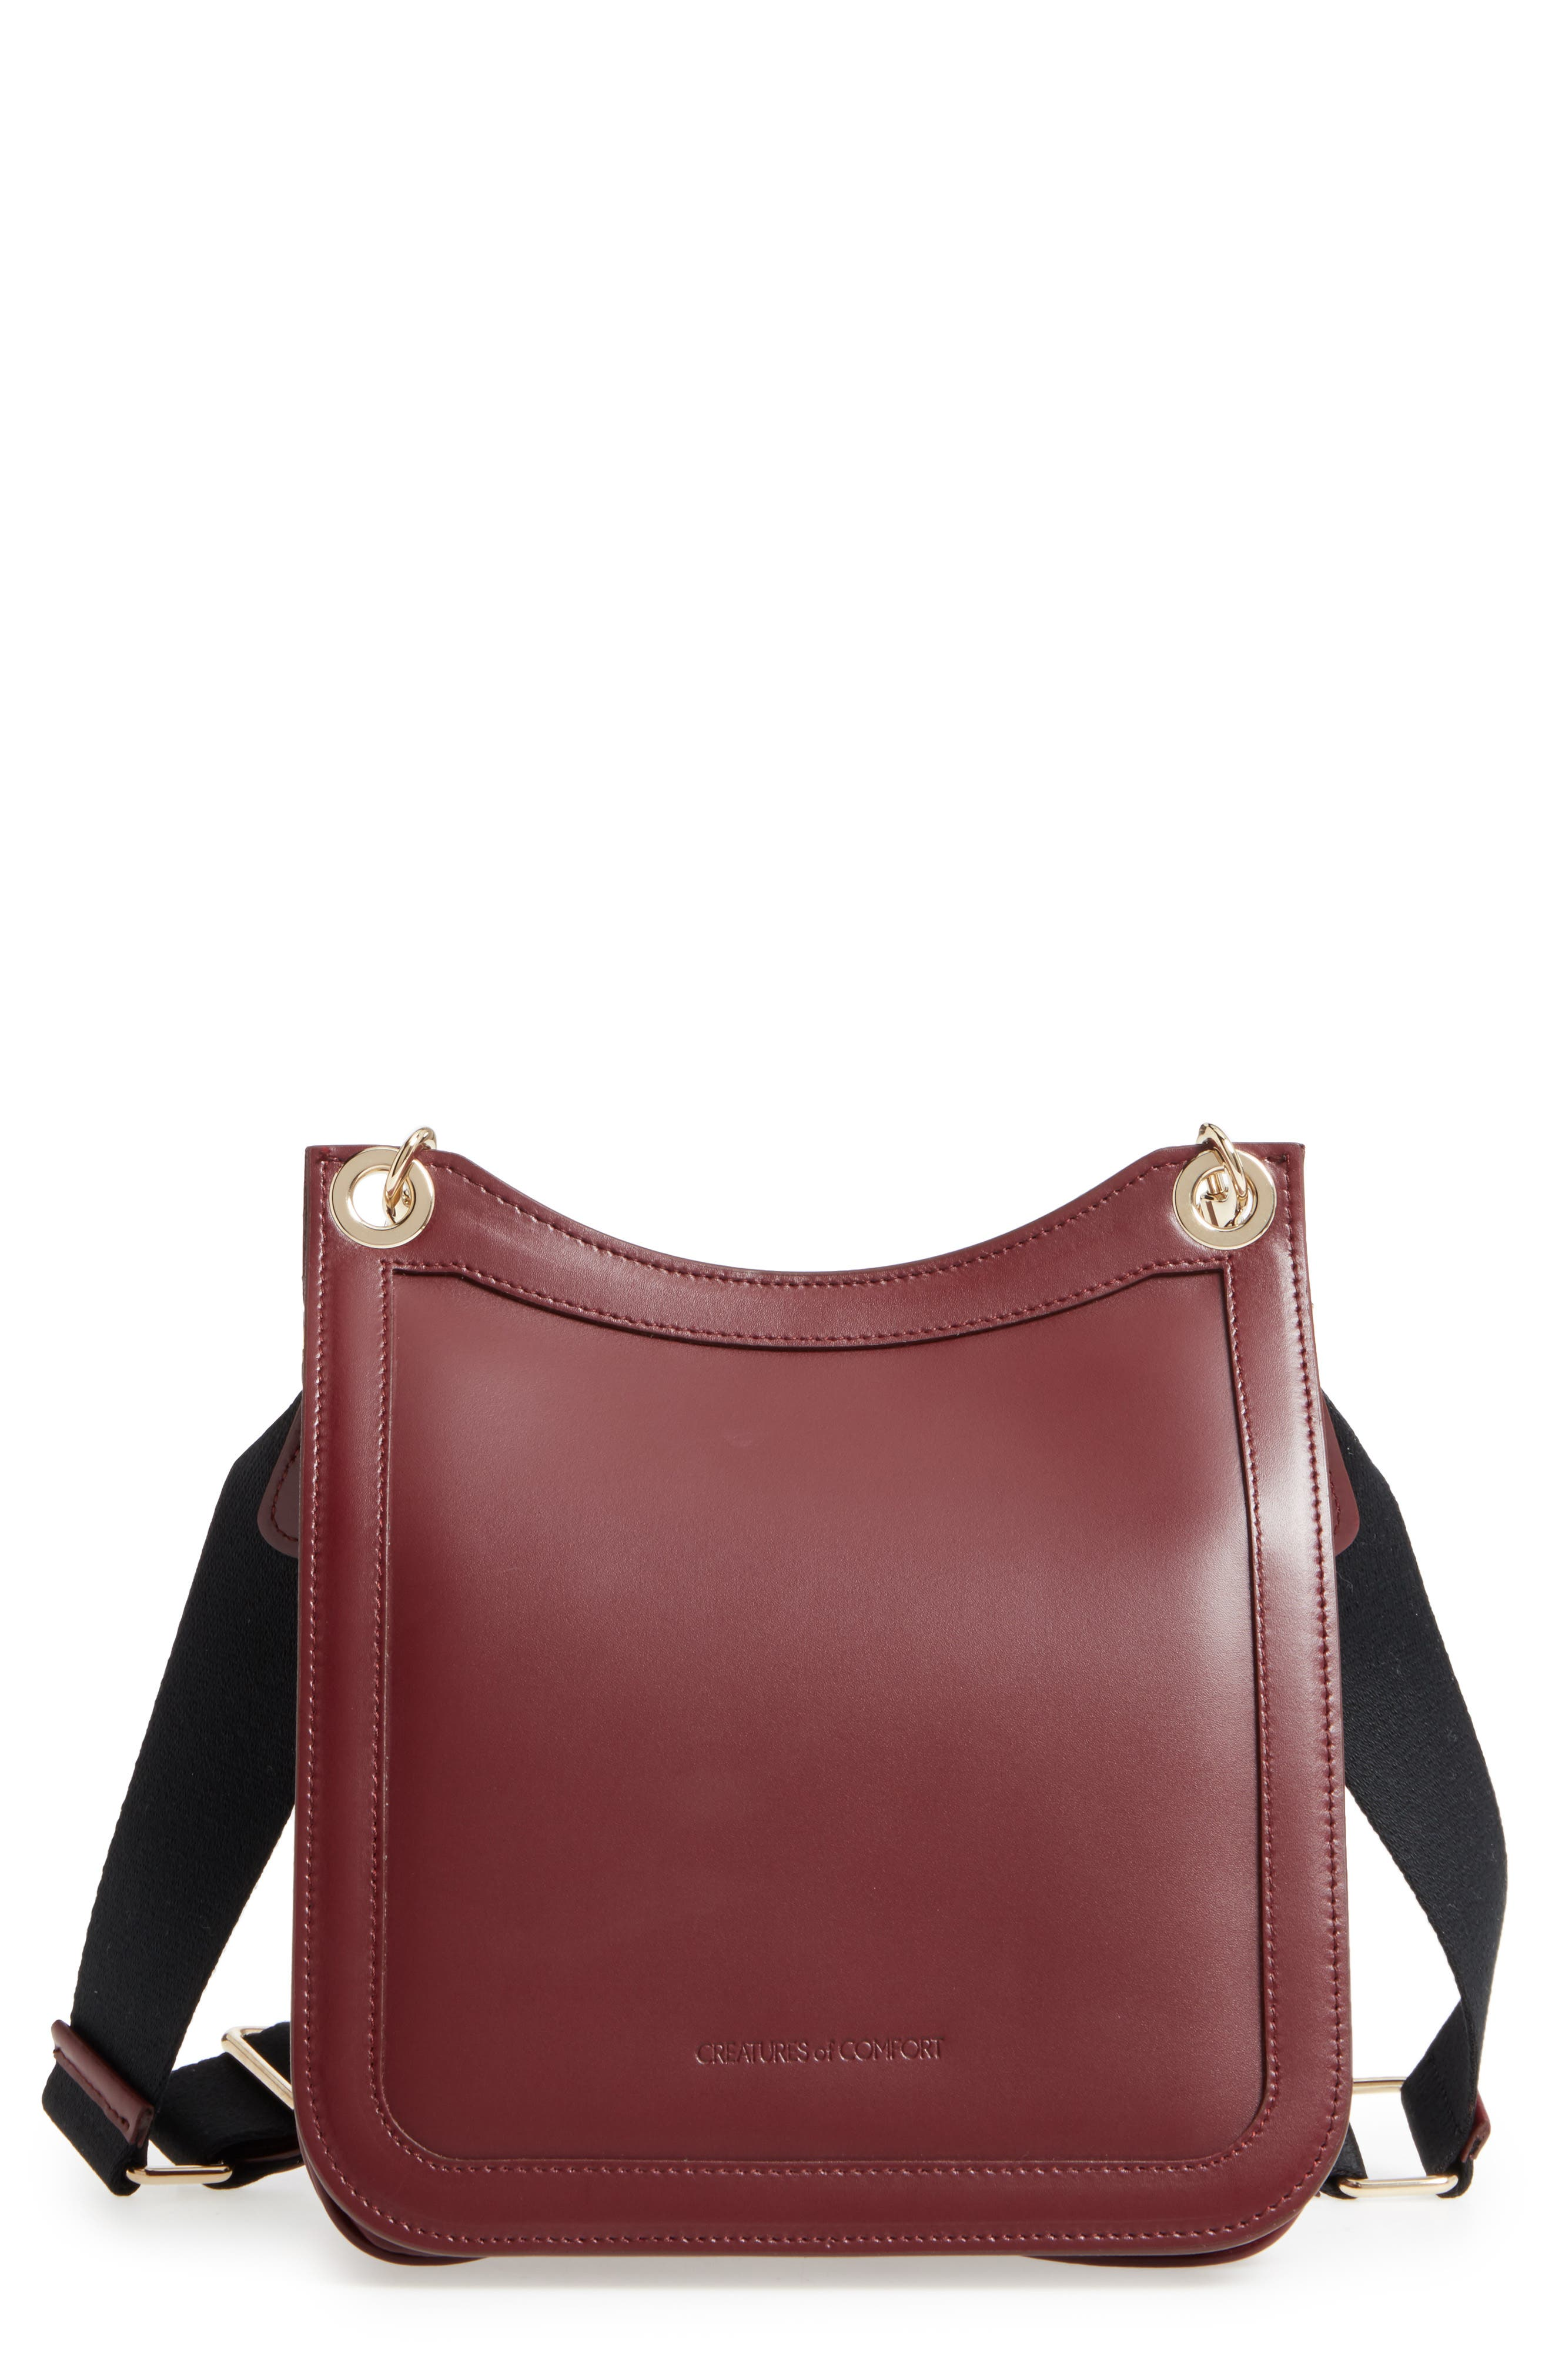 Creatures of Comfort Leather Equestrian Crossbody Bag